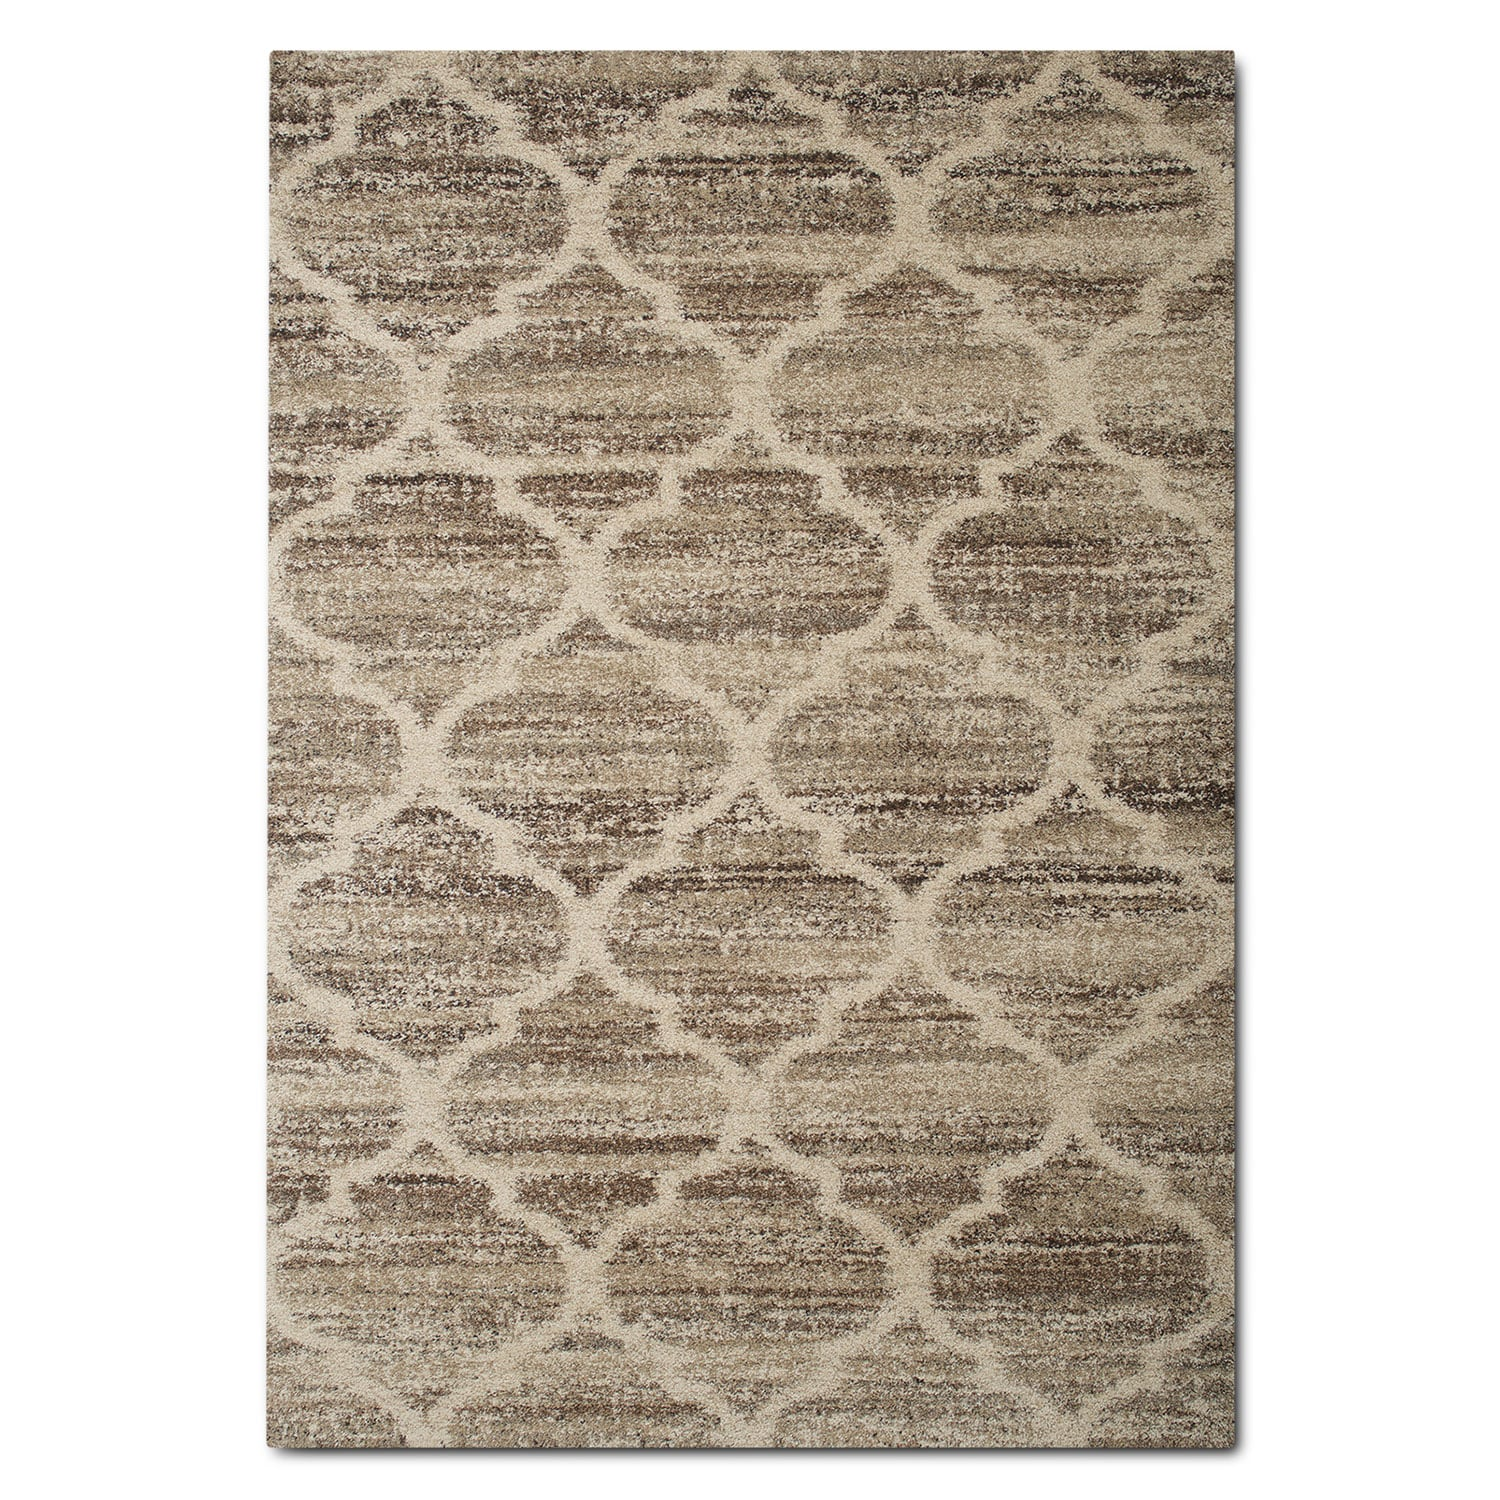 Rugs - Granada 8' x 10' Area Rug - Tan and Brown